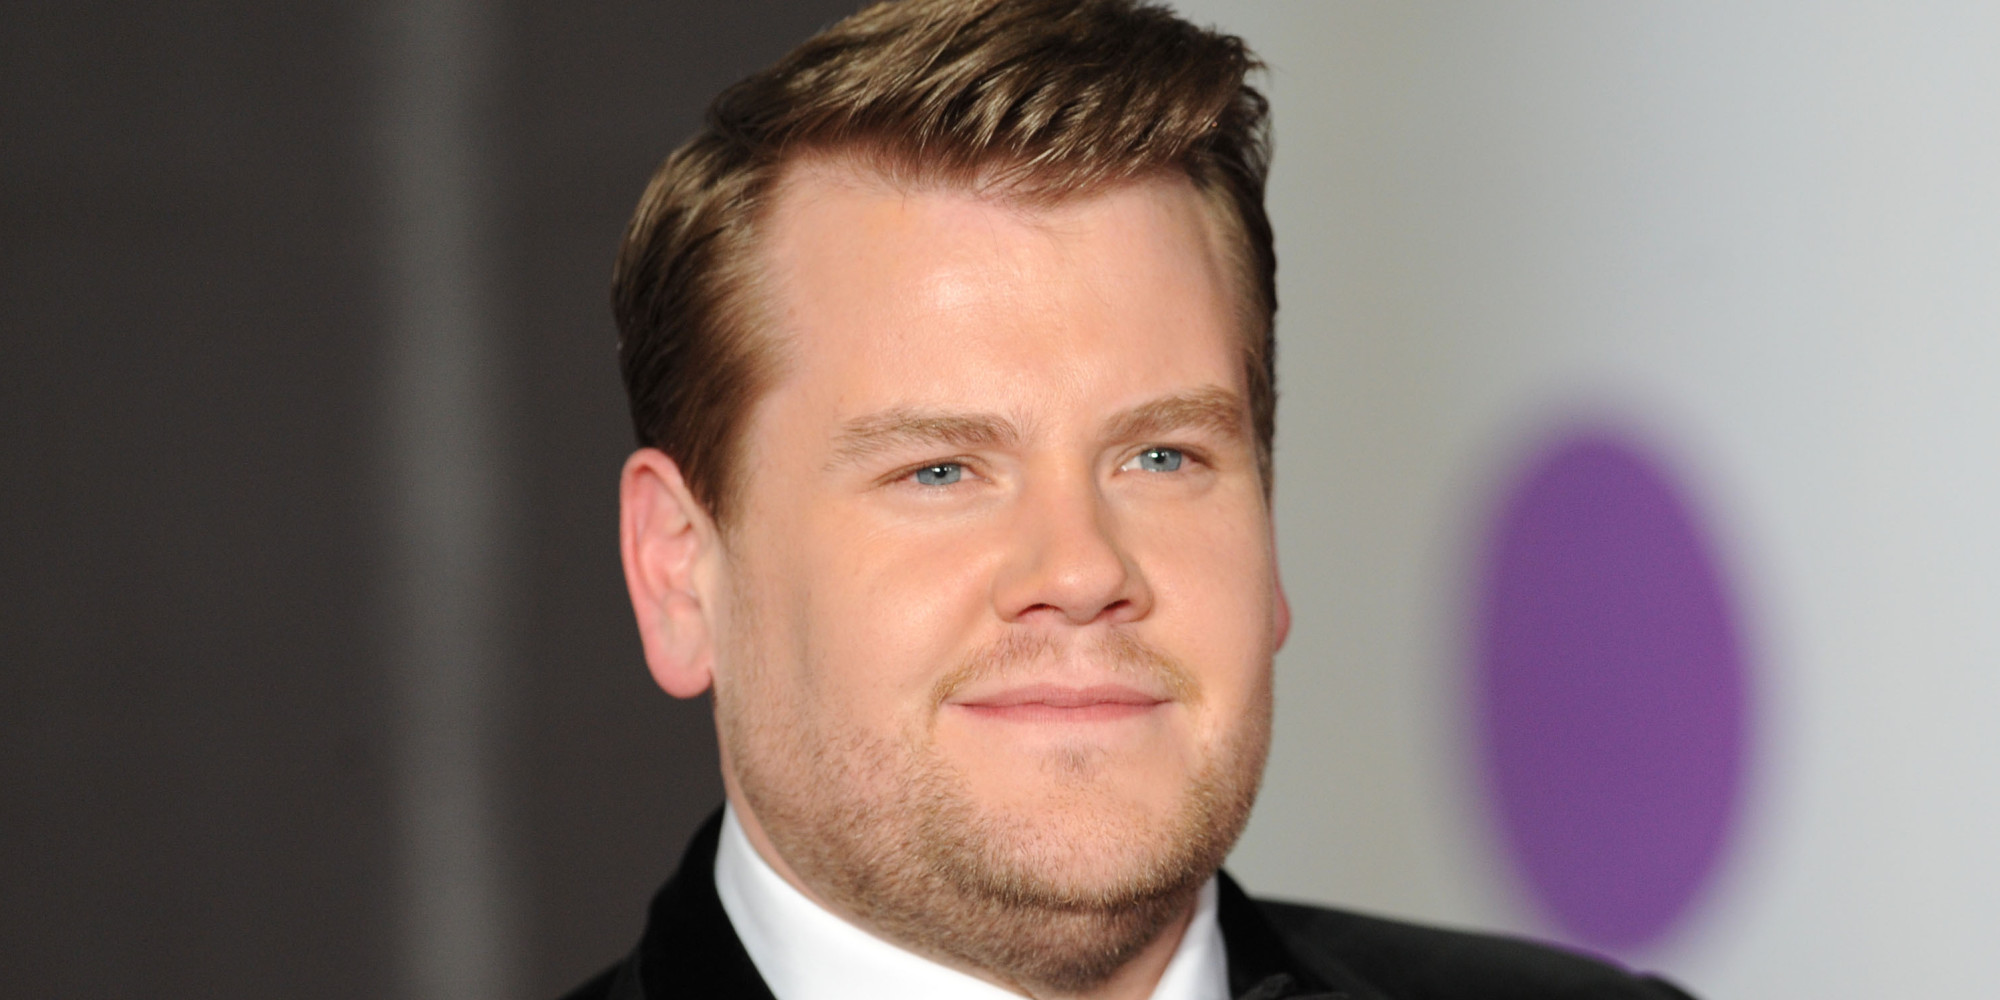 james corden moviesjames corden wife, james corden show, james corden youtube, james corden height, james corden late late show, james corden carpool, james corden adele, james corden net worth, james corden рост, james corden twitter, james corden wiki, james corden vk, james corden movies, james corden lady gaga, james corden beauty and the beast, james corden sister, james corden candy, james corden dan stevens, james corden jennifer lawrence, james corden car